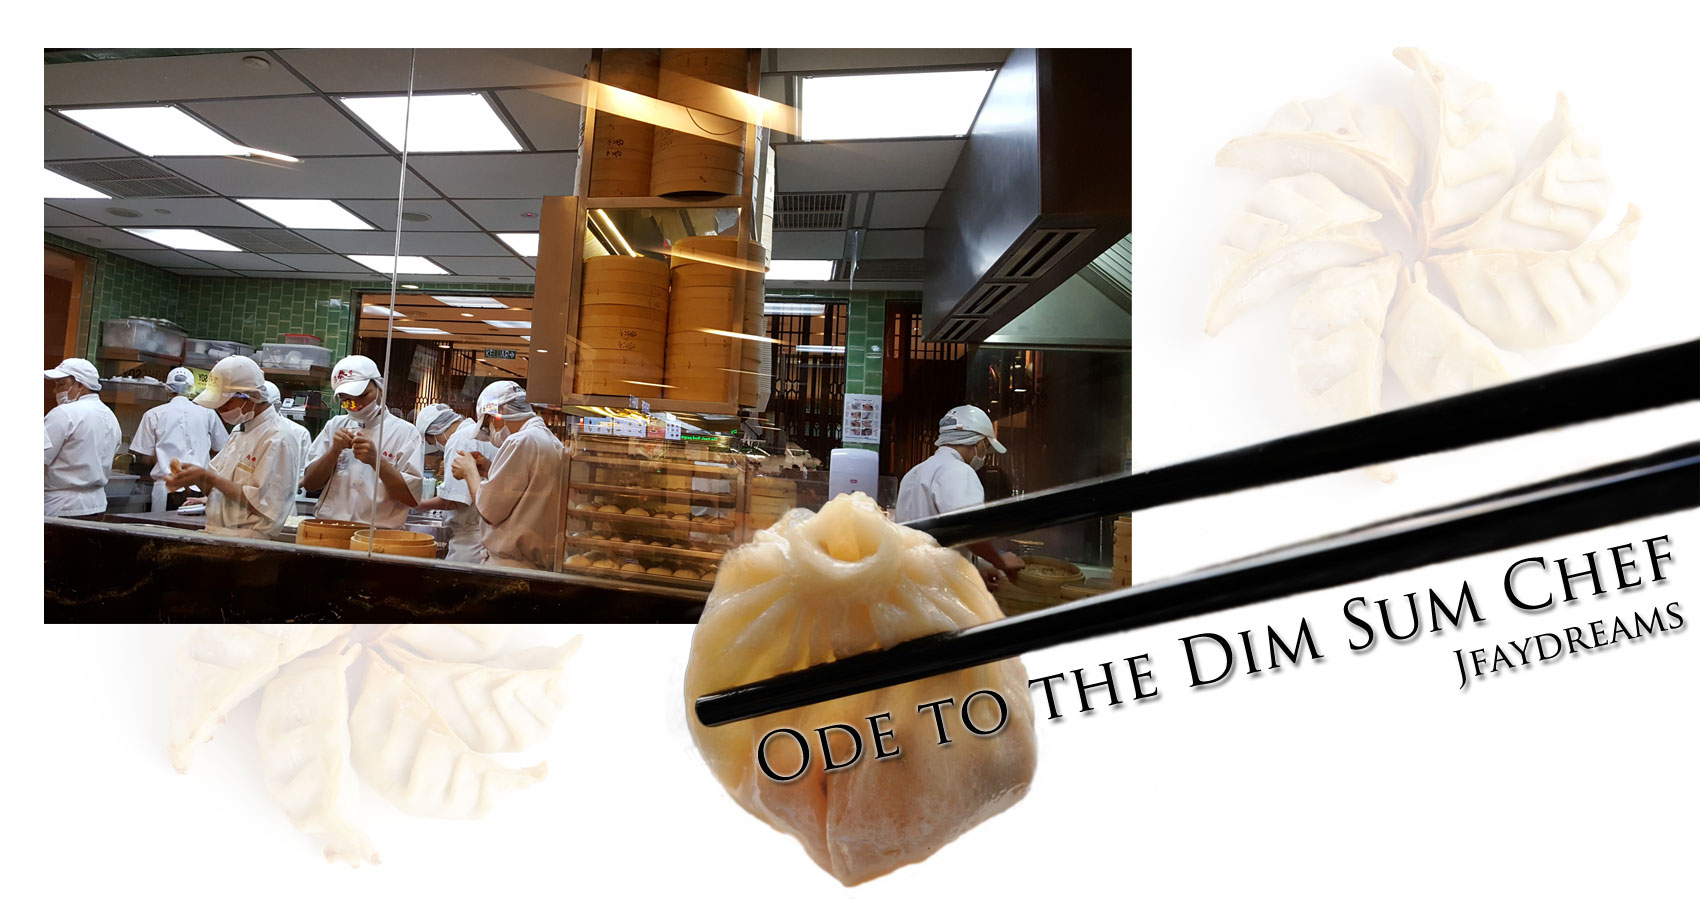 Ode to the Dim Sum Chef by Jfaydreams at Spillwords.com